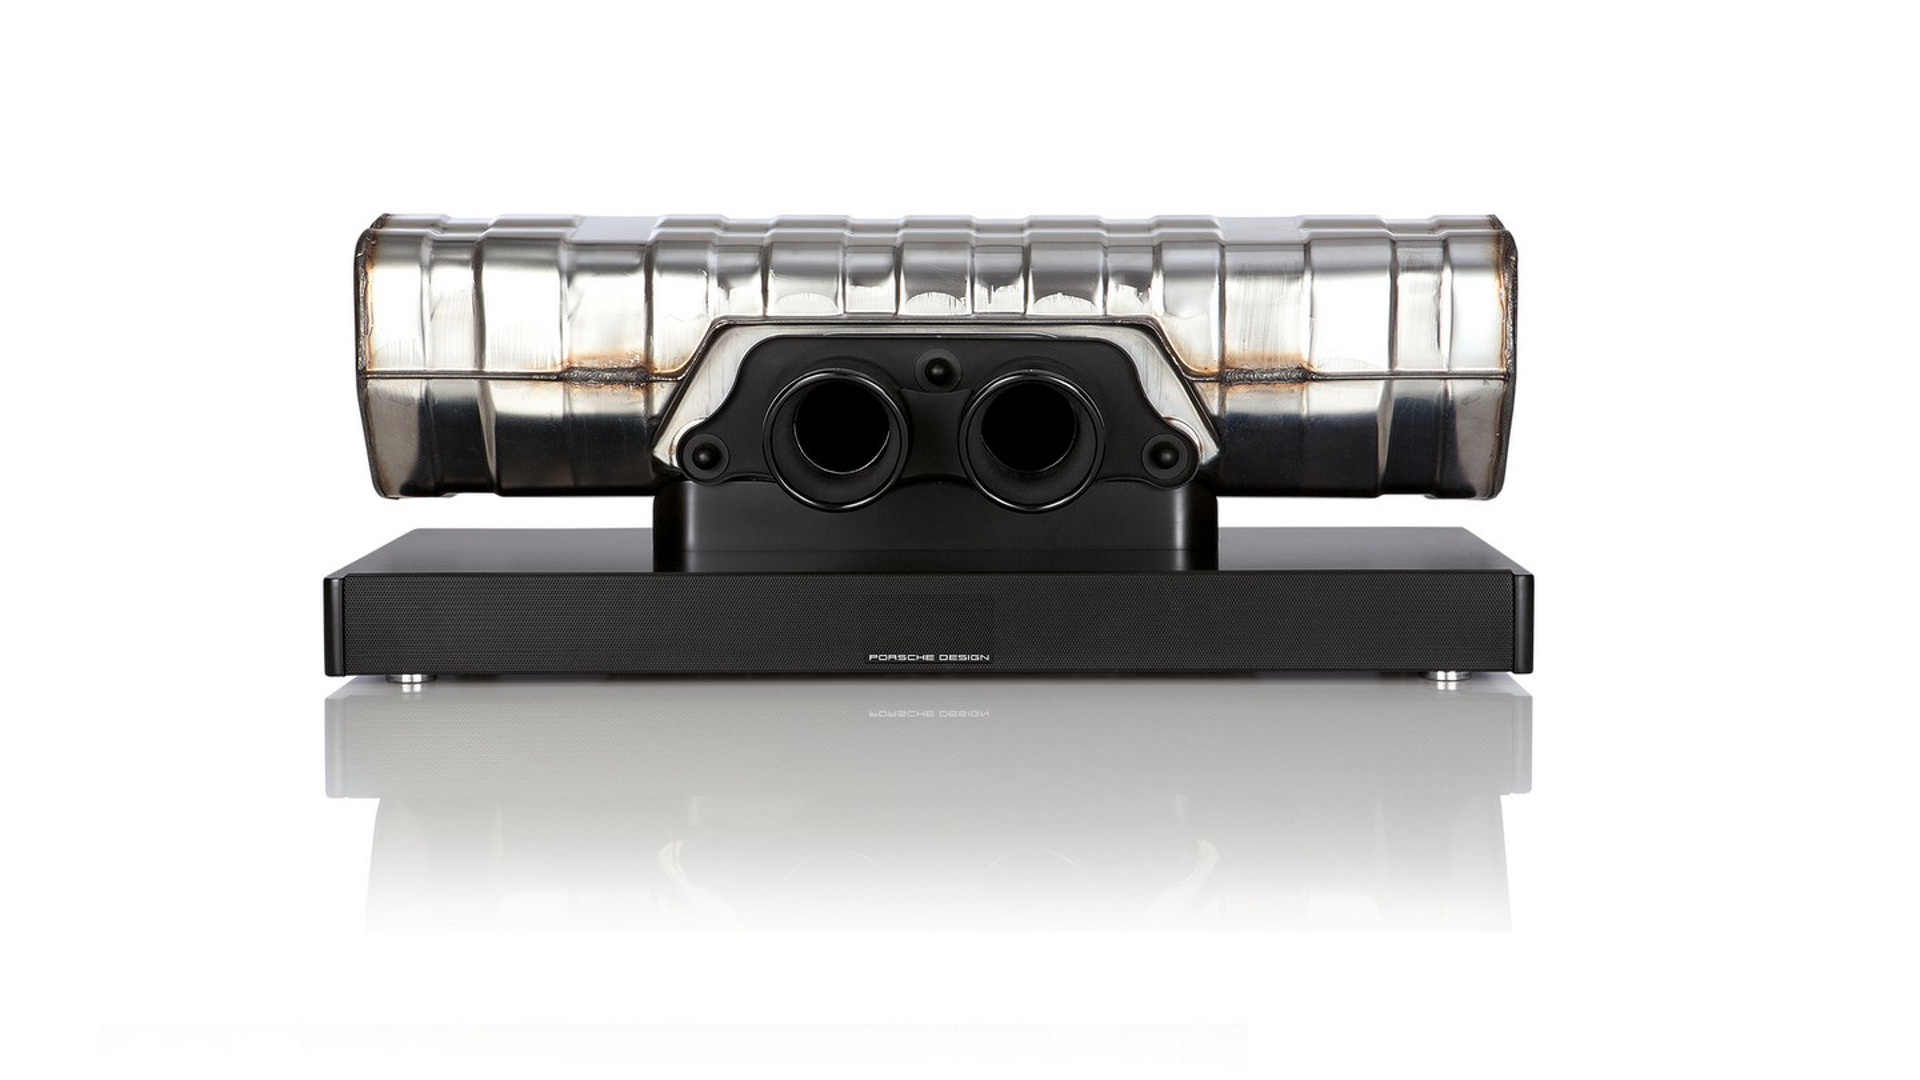 Porsche will sell you a $3k soundbar made from an exhaust. Your GF will hate it